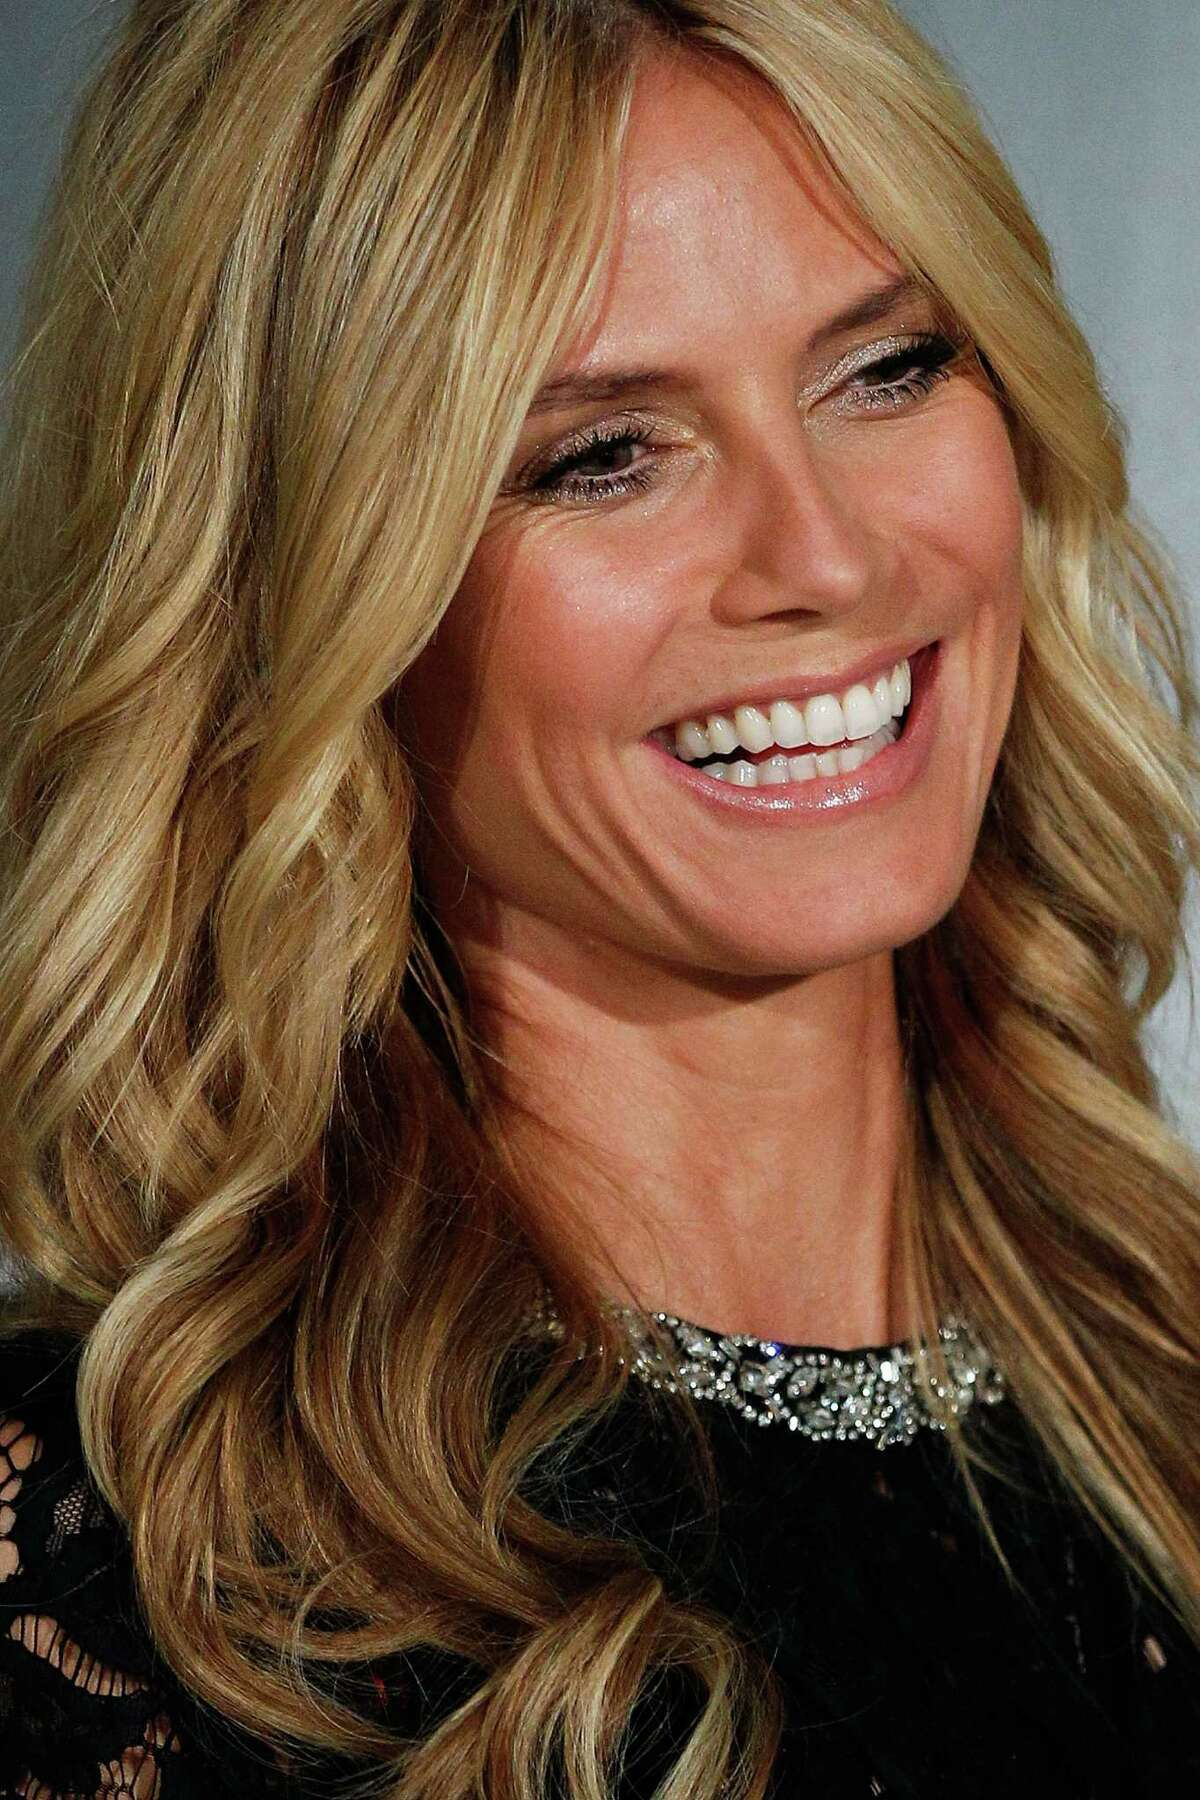 Heidi Klum attends David Jones launch of her Intimates Collection at David Jones Elizabeth Street Store on January 28, 2015 in Sydney, Australia.